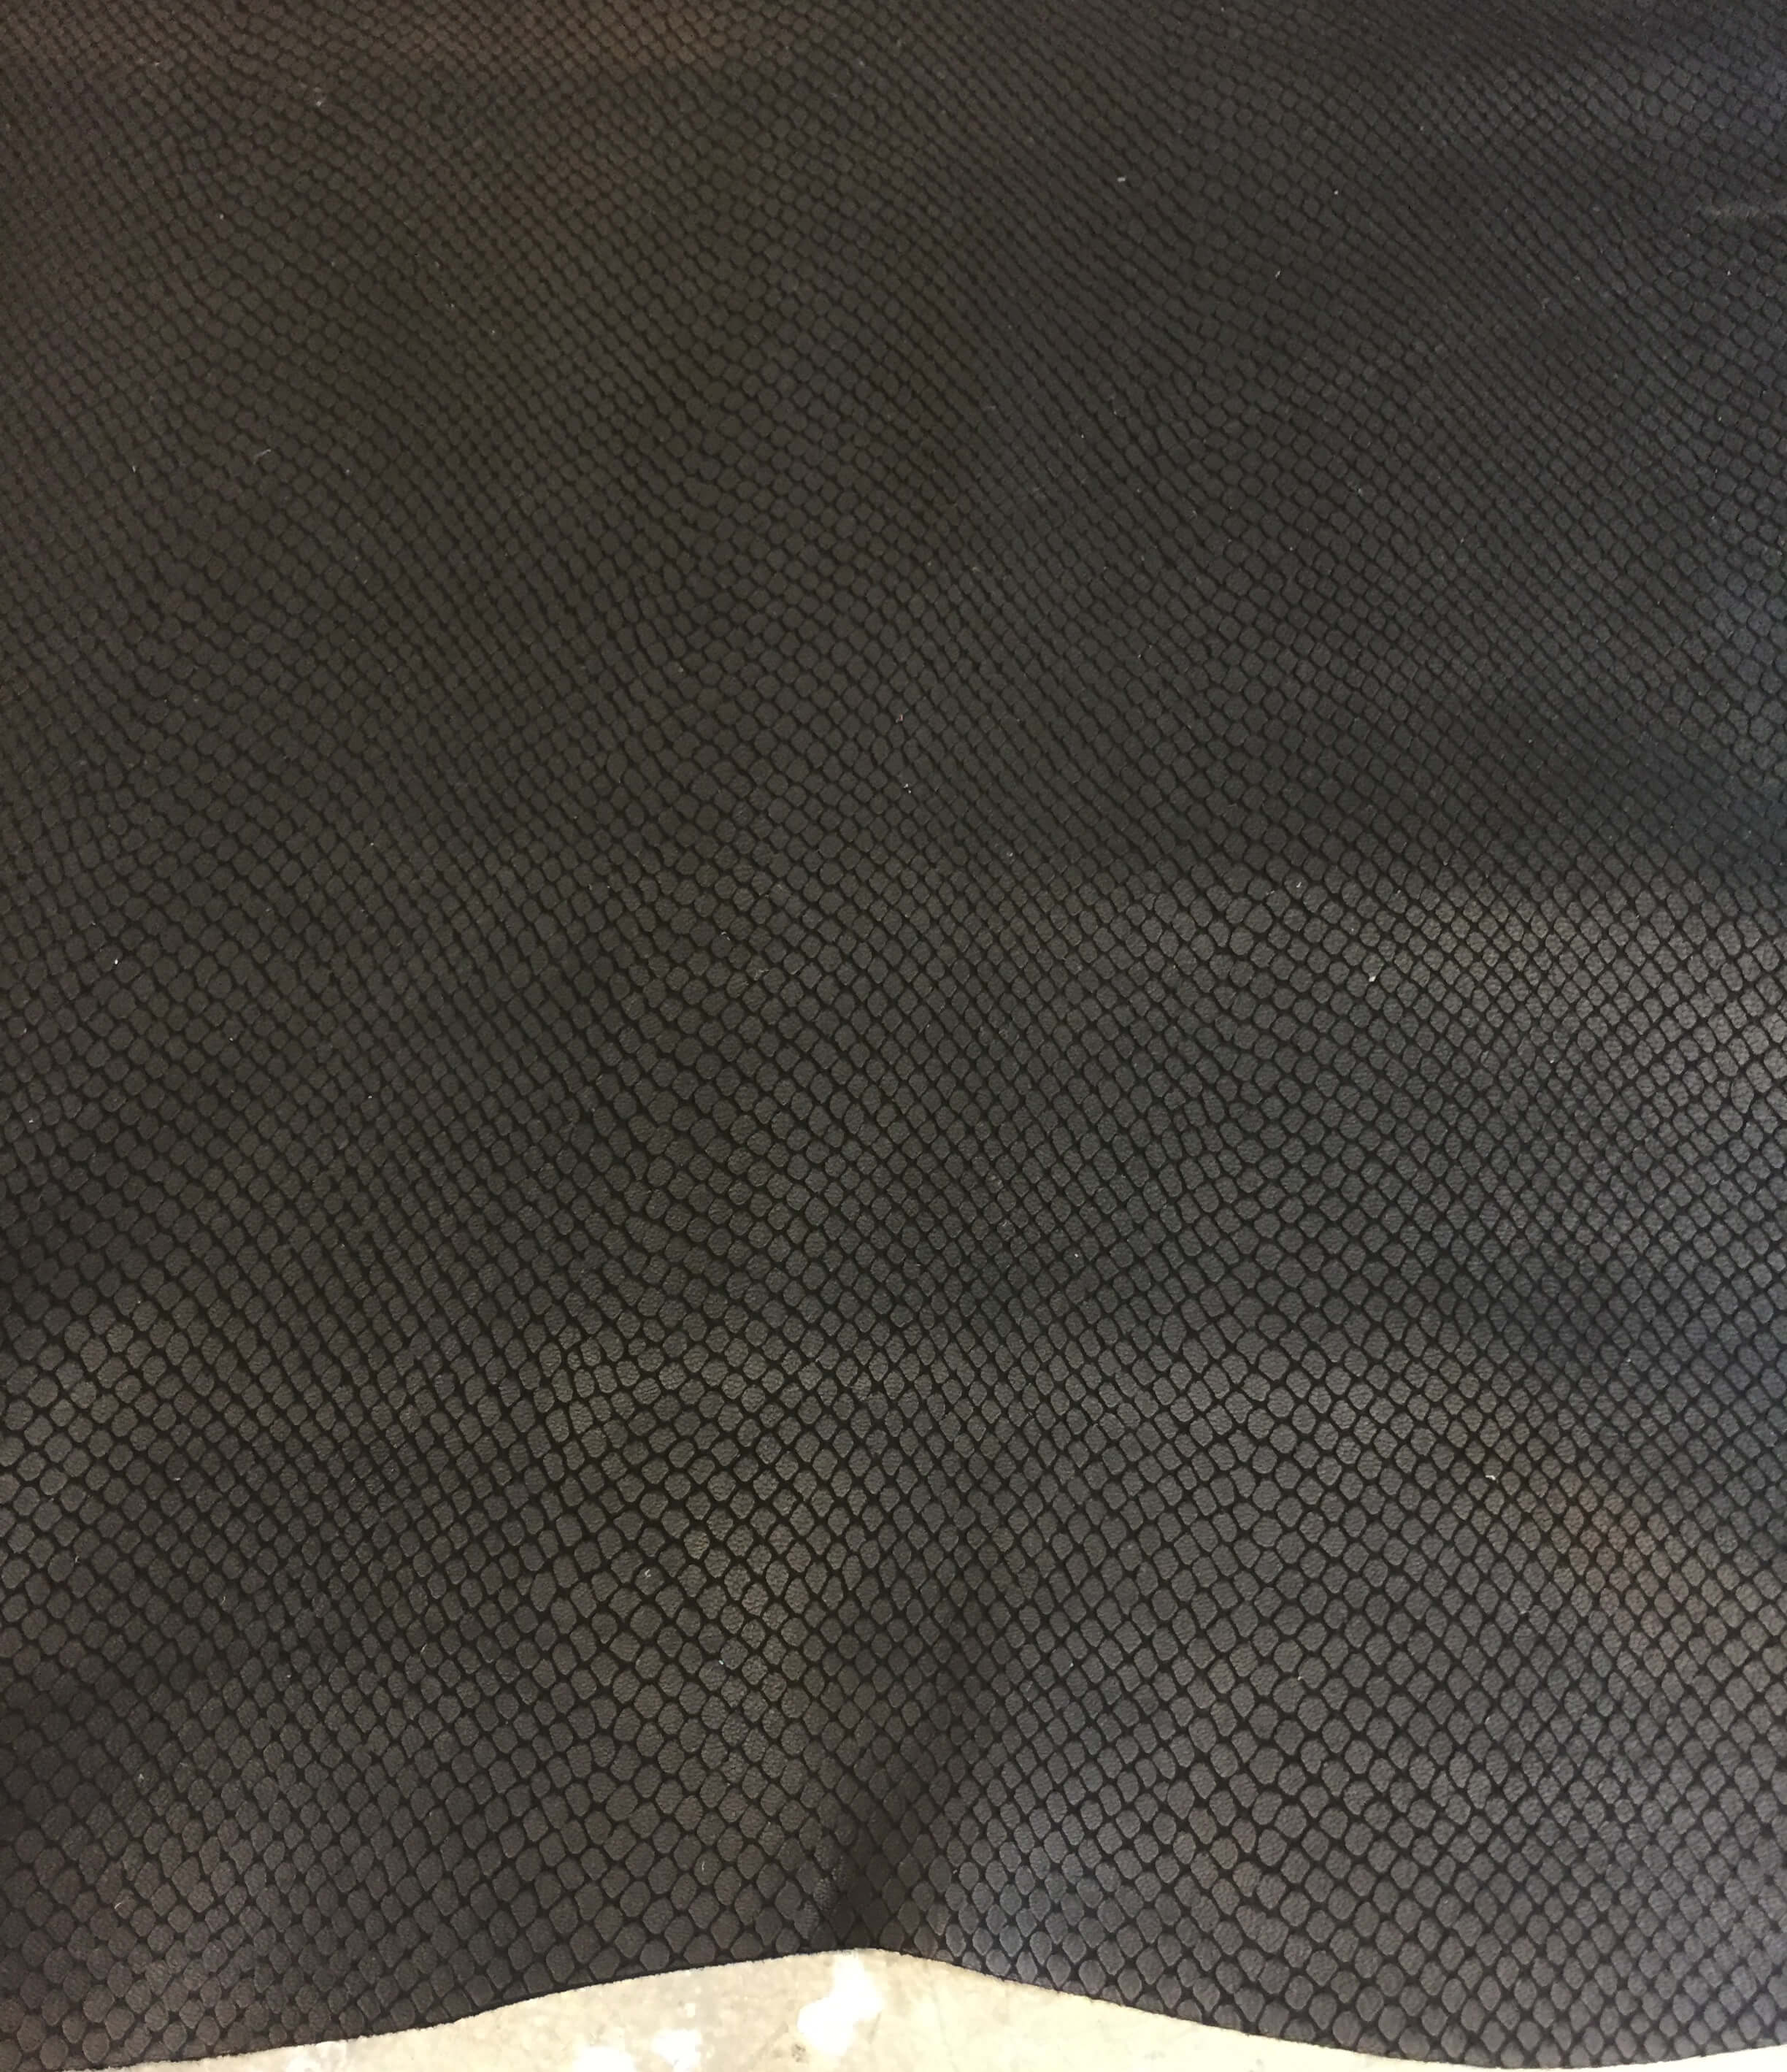 SALE Black Genuine Leather Hide, Snakeskin Embossed for Crafting and Sewing Projects